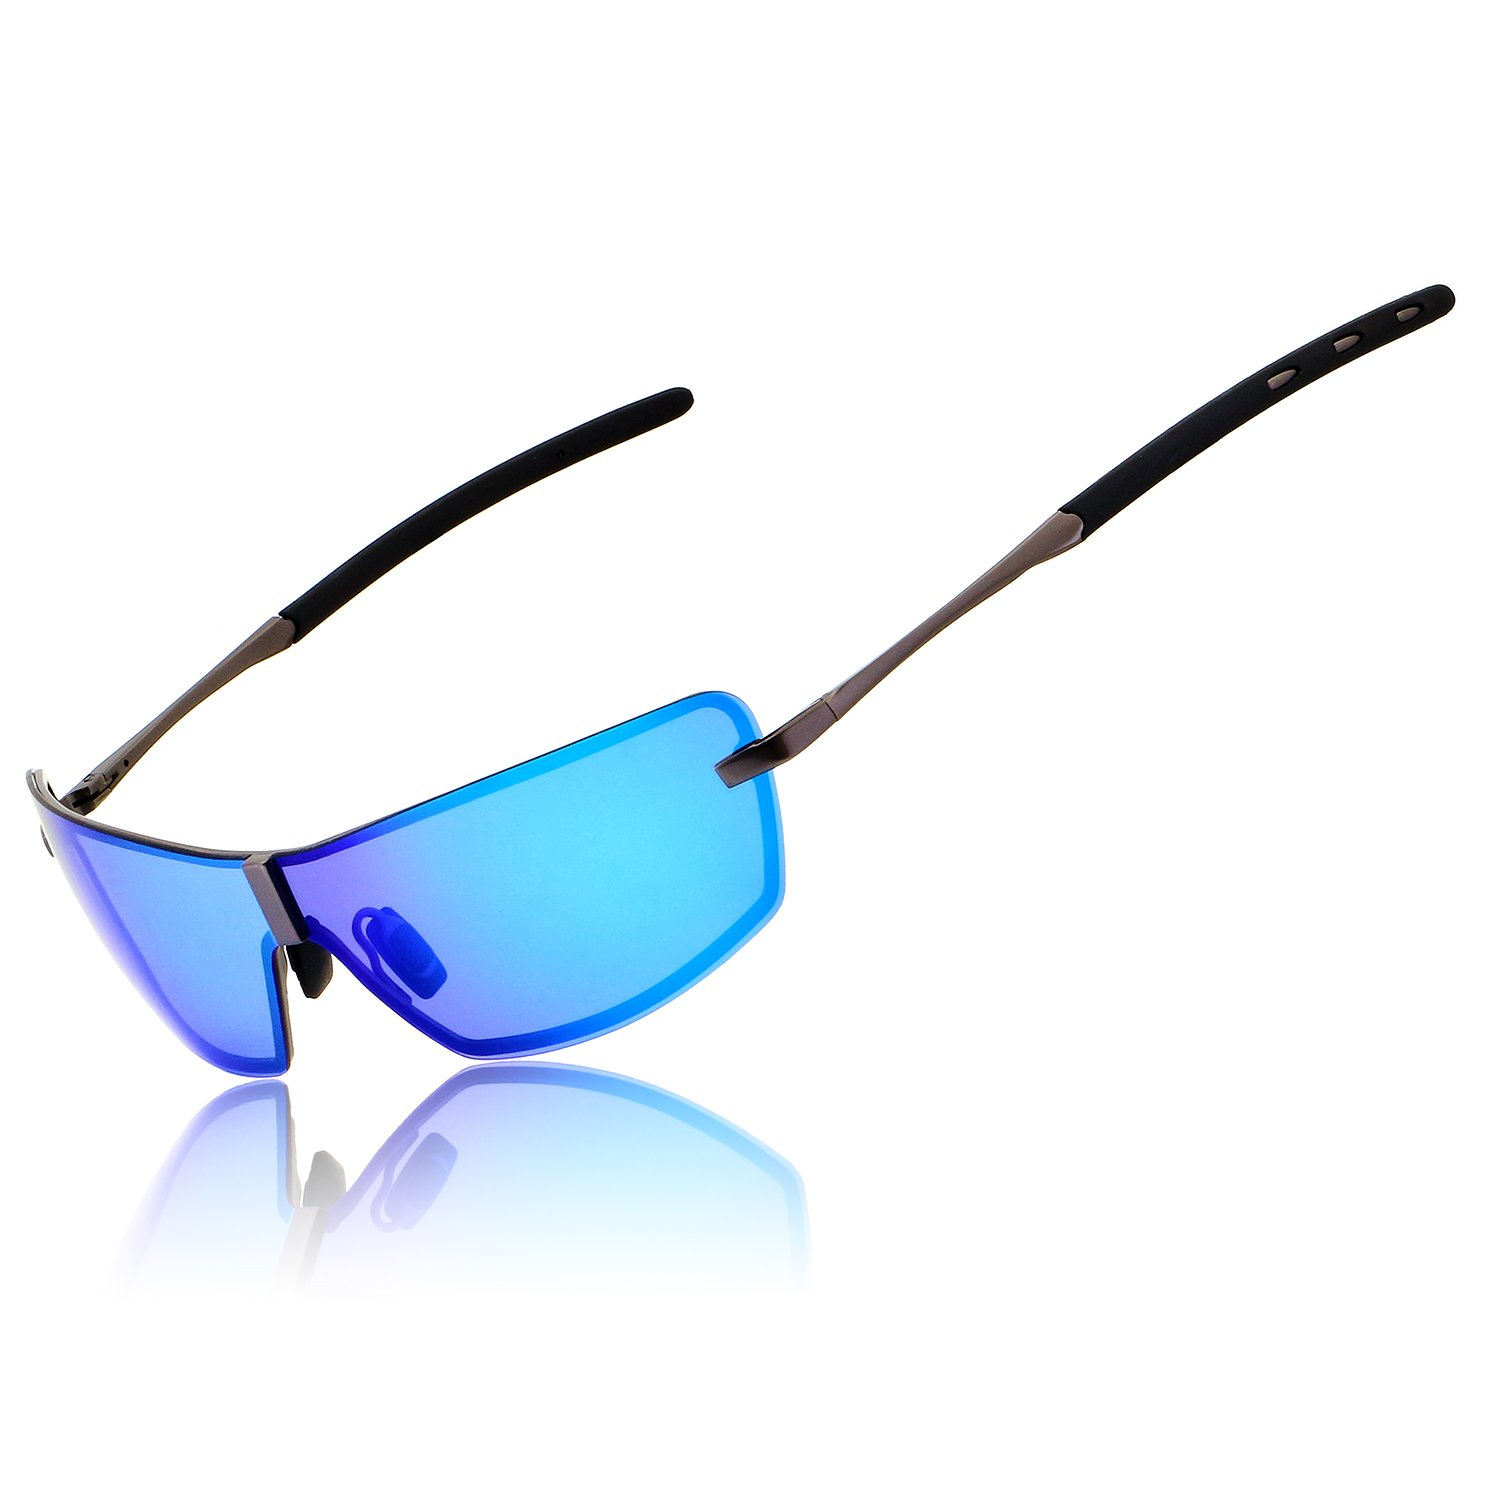 Ronsou Mens UV400 Polarized Sunglasses Mirrored For Driving Fishing Golf Outdoor with Gift Case gray frame/blue lens